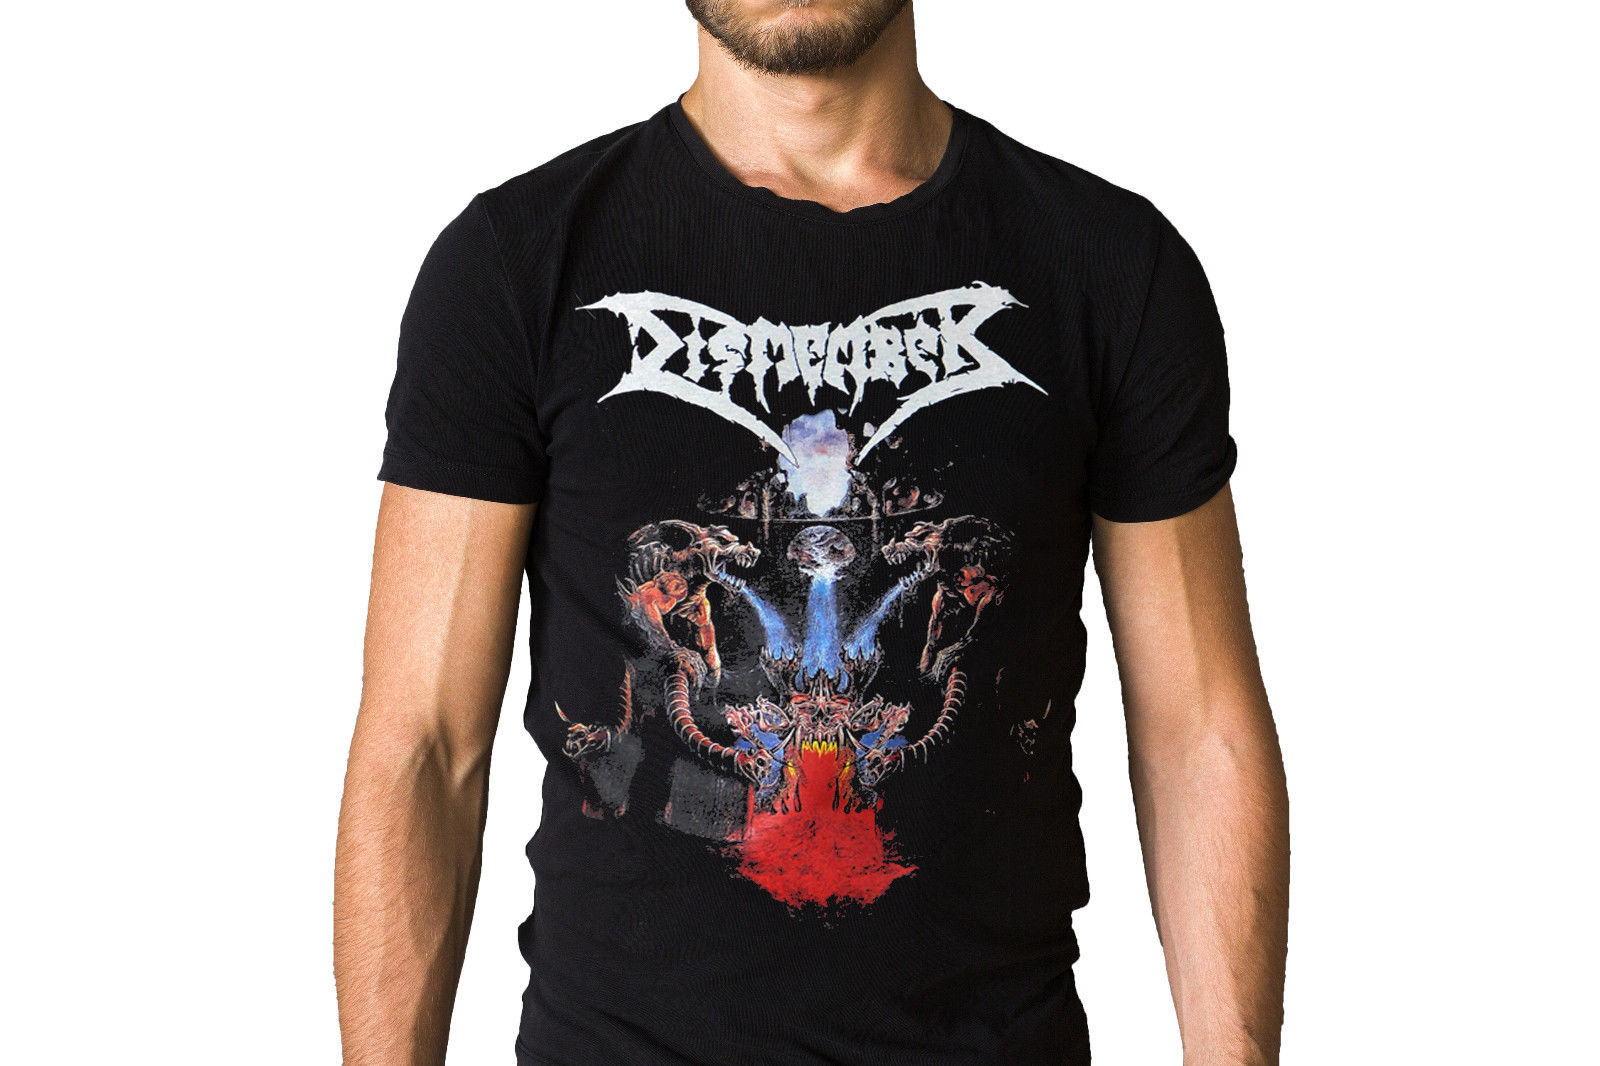 Dismember Like An Ever Flowing Stream 1991 Album Cover T-Shirt New Mens Spring Summer Dress Short Sleeve Casual image